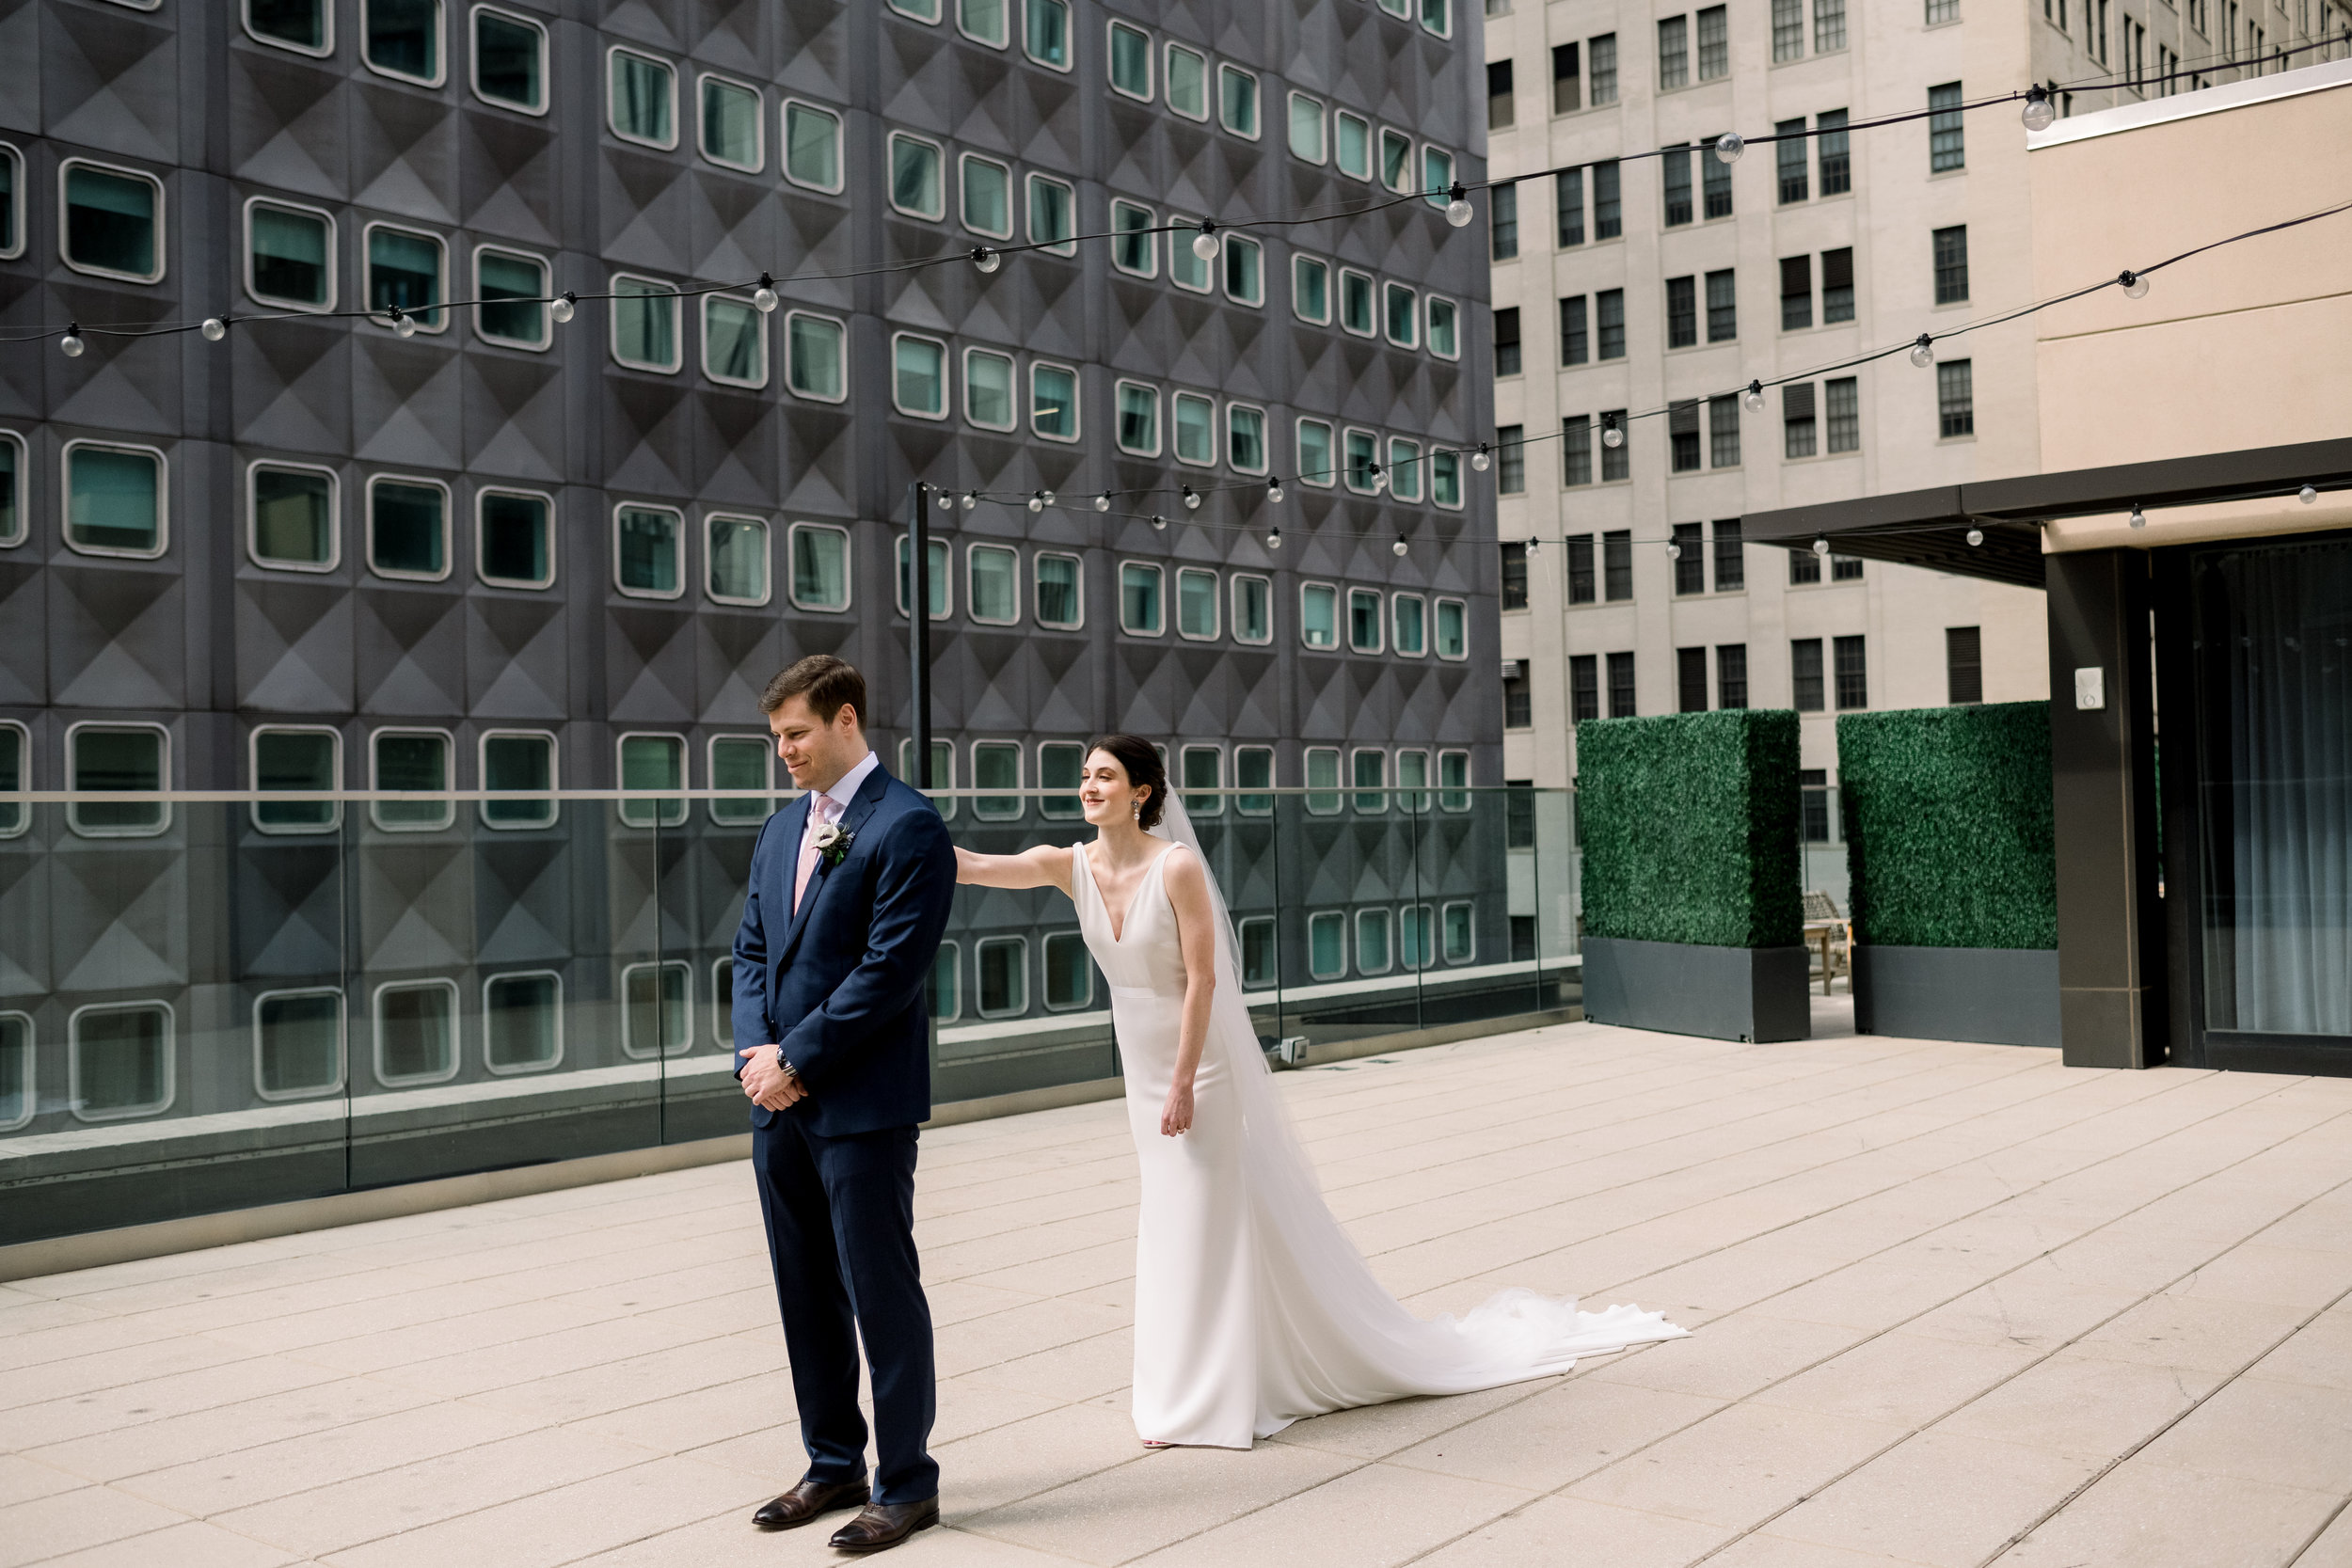 Bride and groom share first look for Pittsburgh wedding at Hotel Monaco planned by Exhale Events. Find more modern wedding ideas at exhale-events.com!